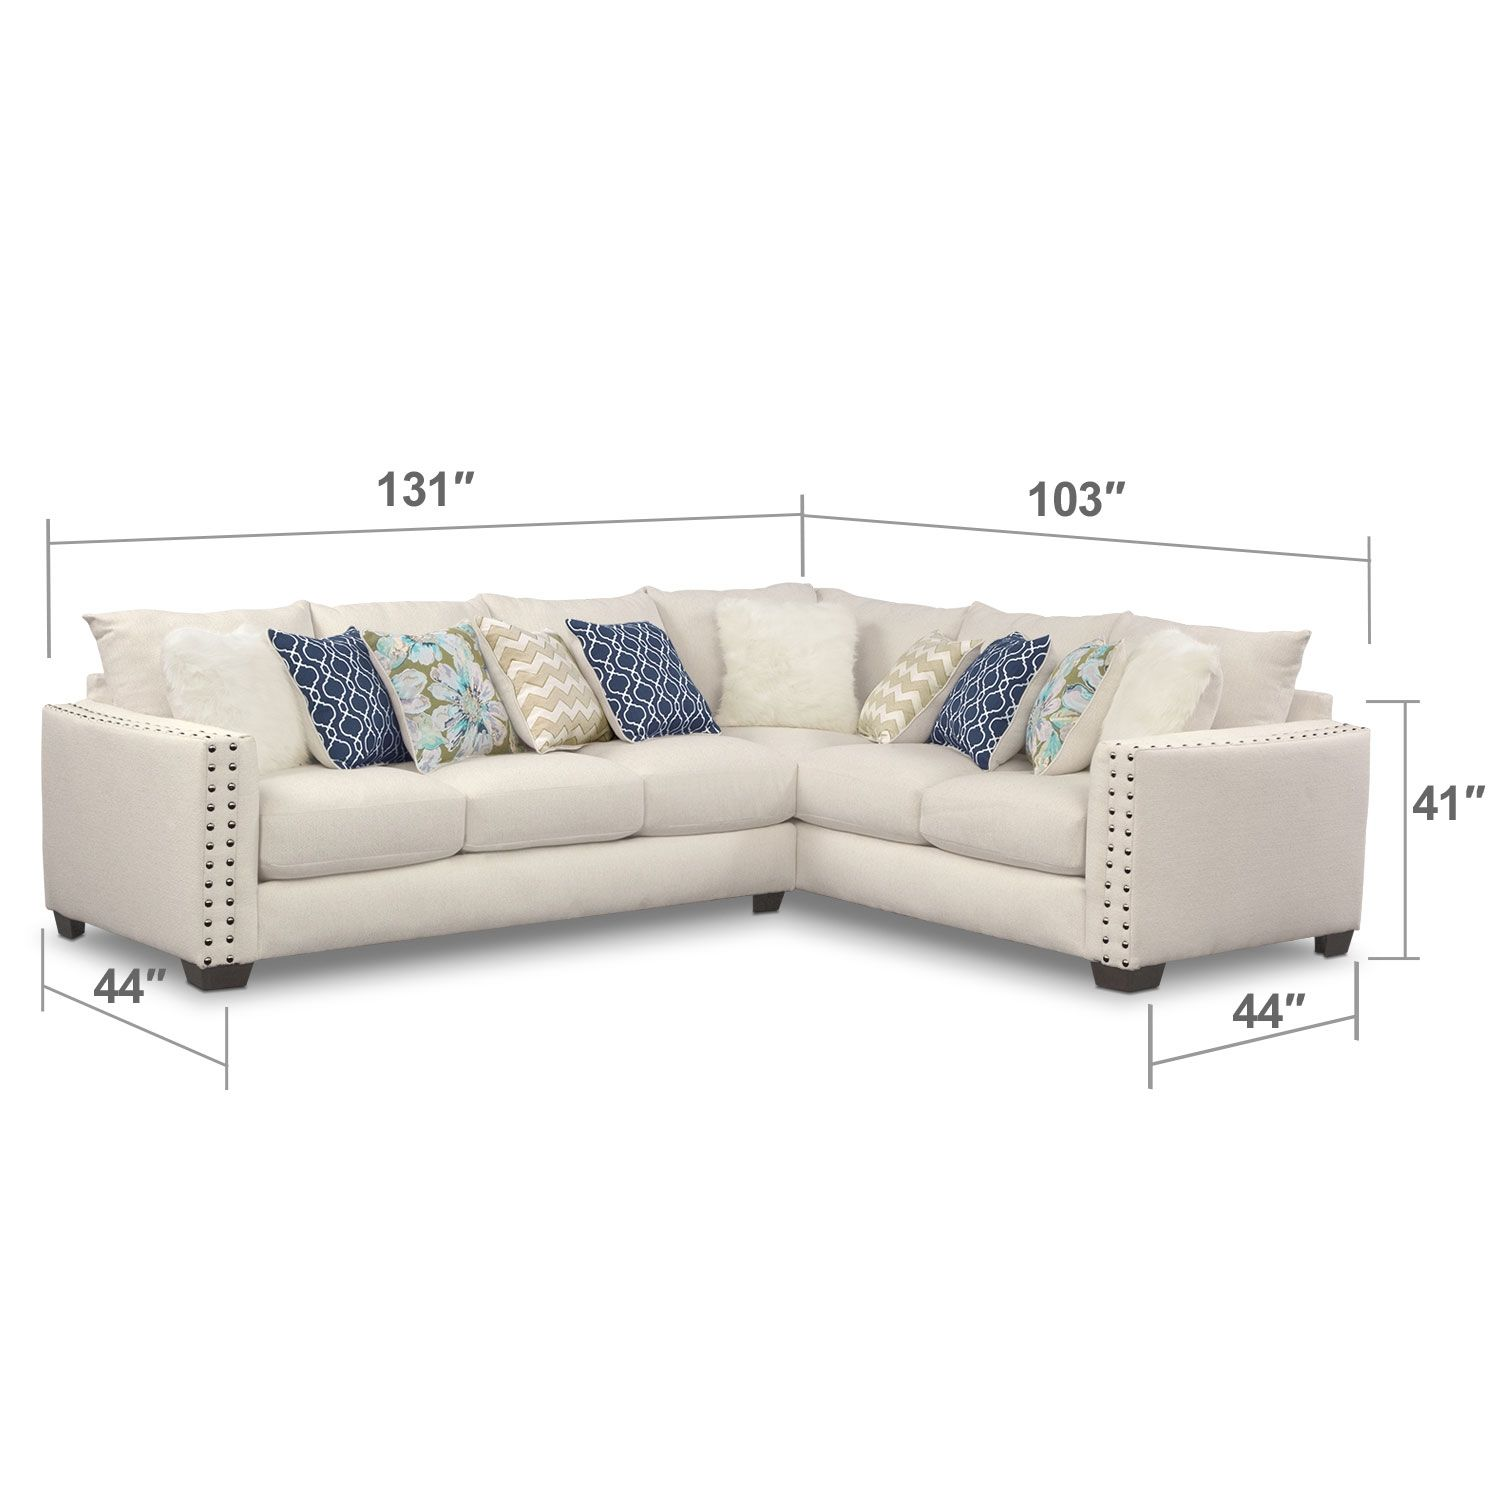 1500 1700 with pull out bed Lolita 2 Pc Sectional Value